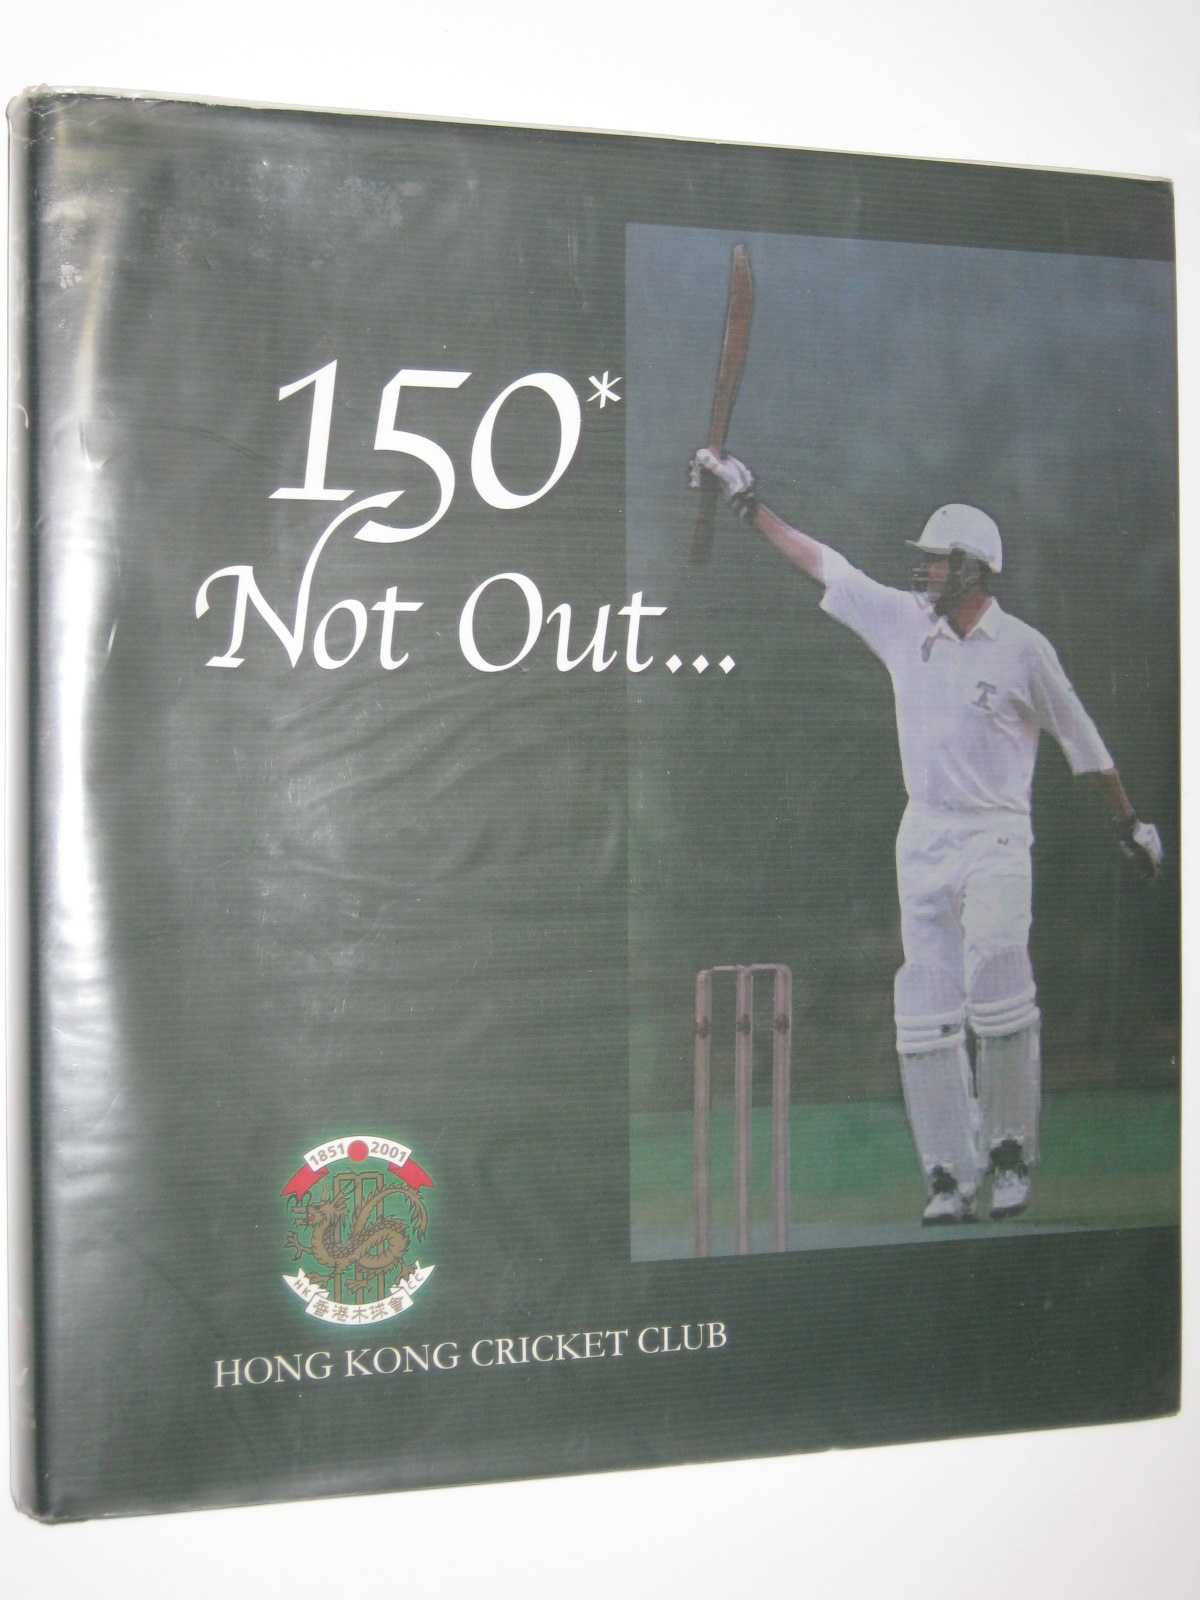 150 Not Out, Lockhart, Saul